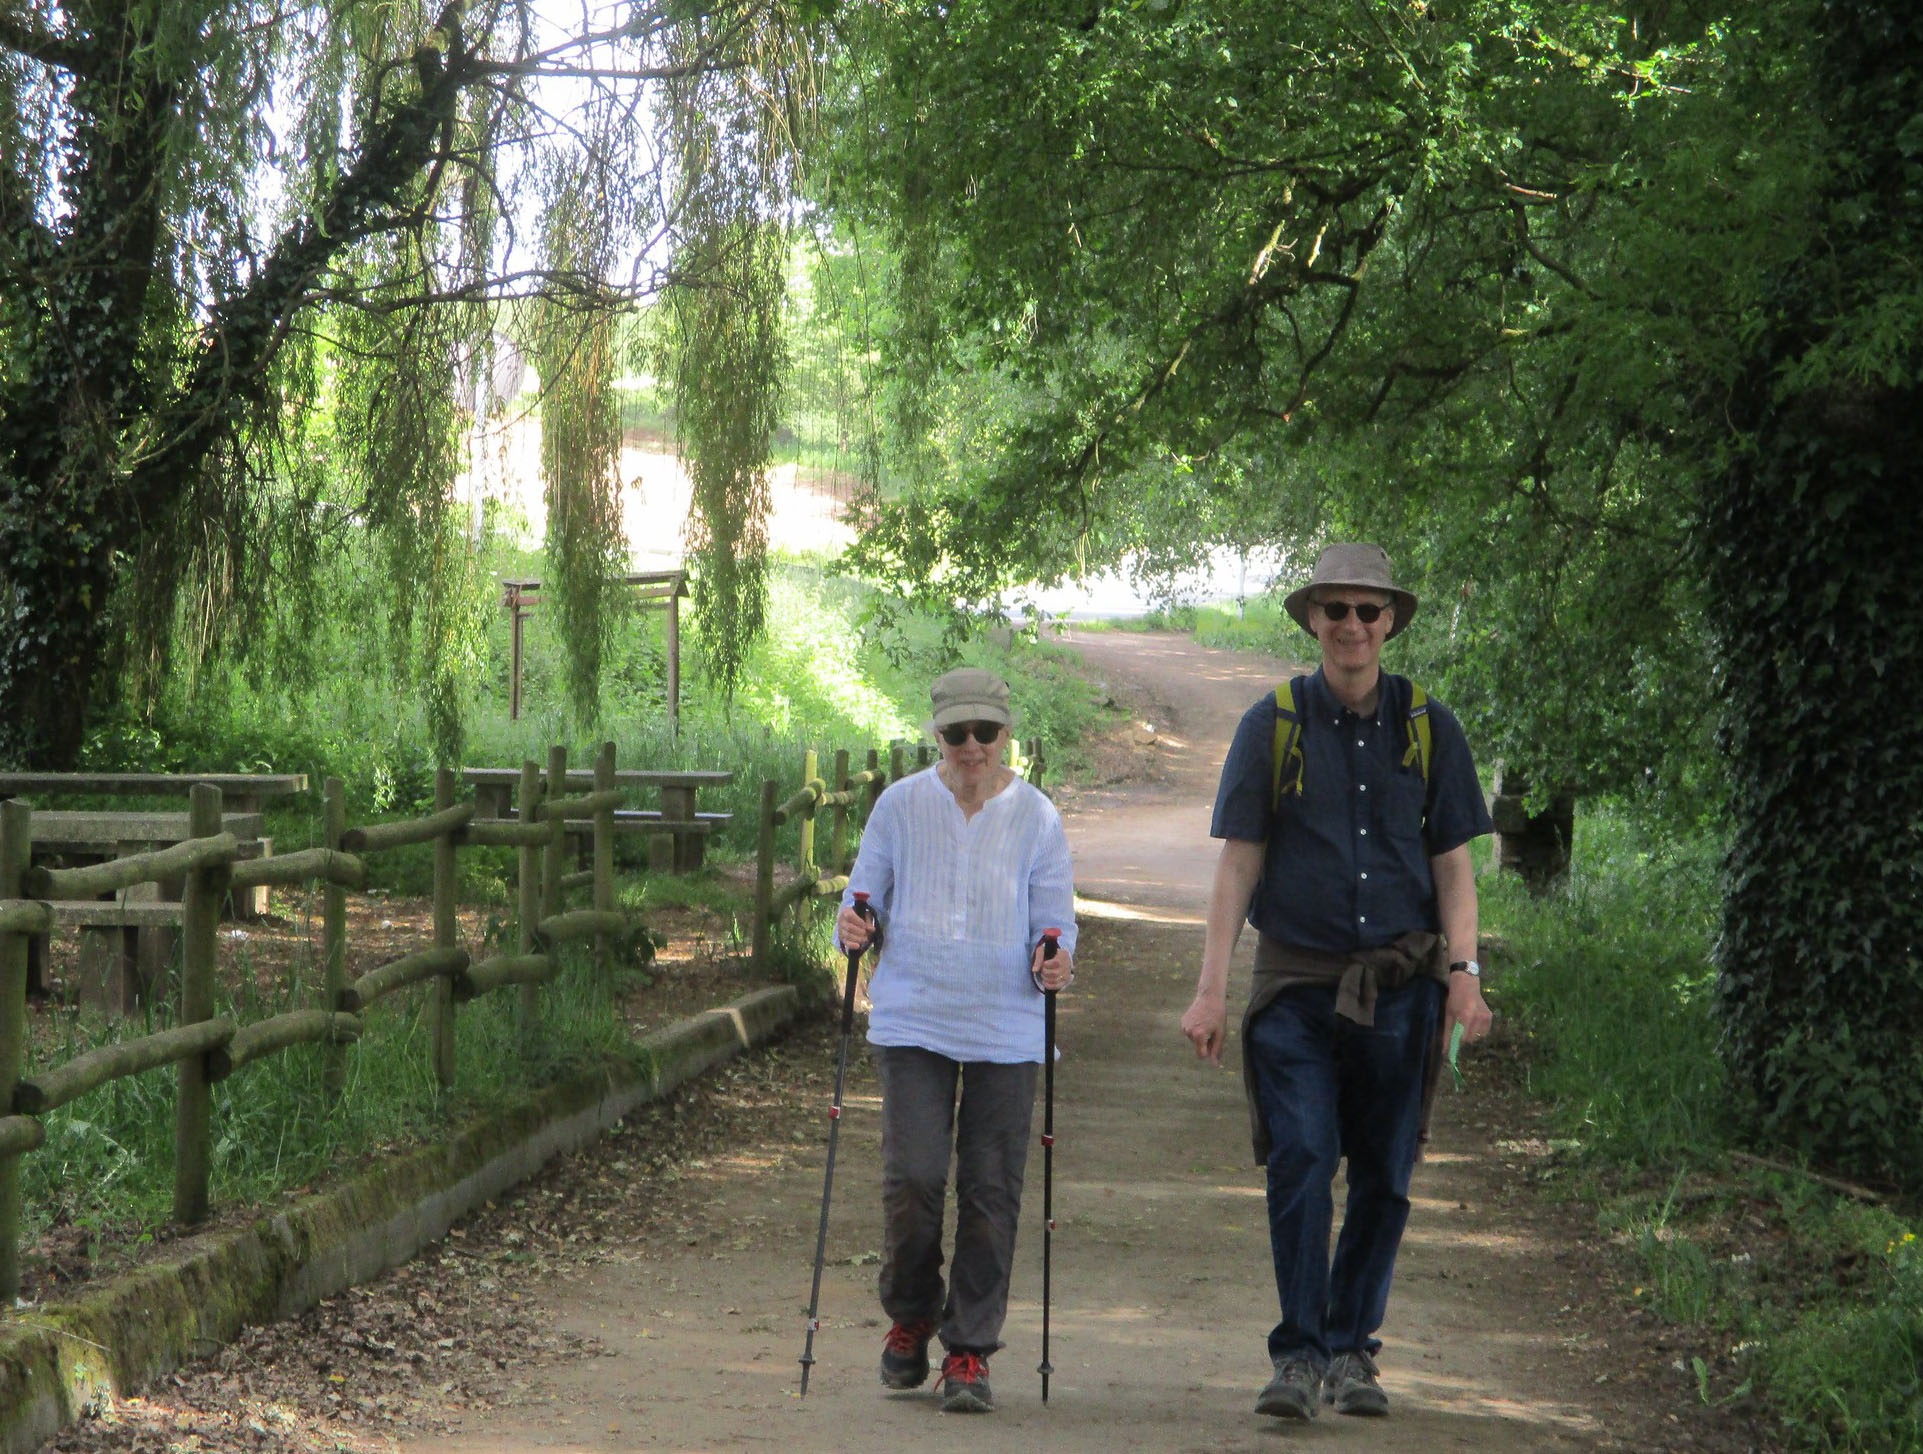 Camino de Santiago Tour - May 20, 2019